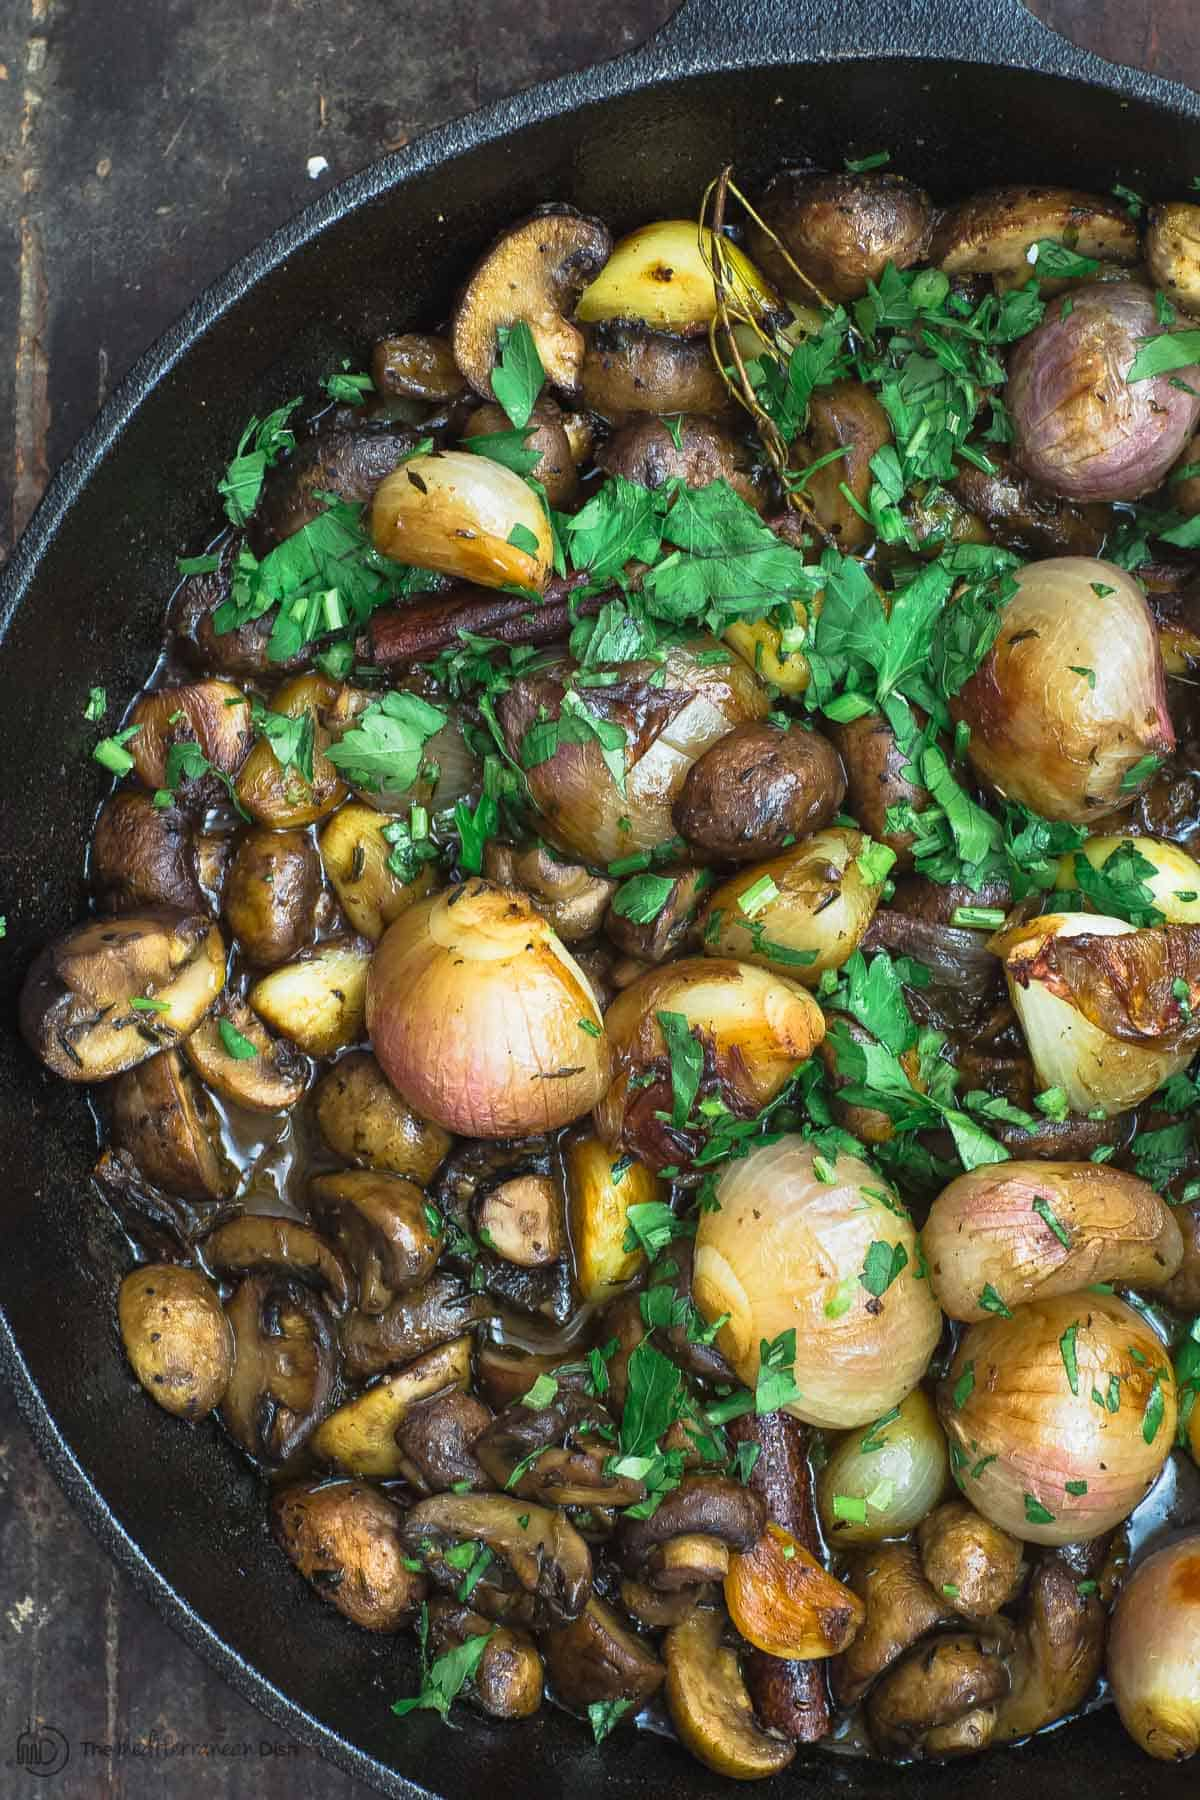 Shallot garlic mushroom recipe in skillet